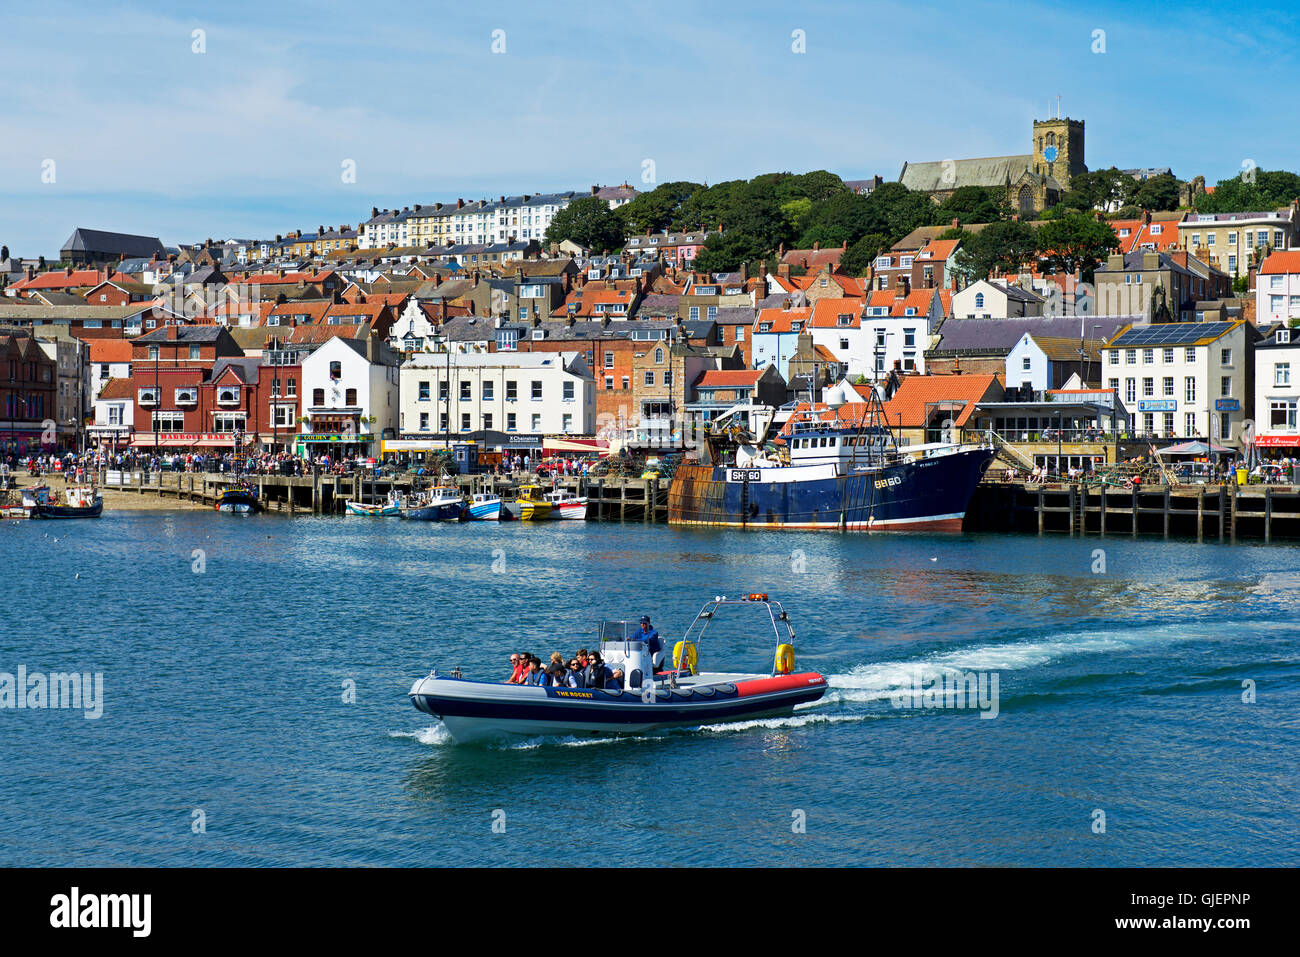 Passenger boat in the harbour, Scarborough, North Yorkshire, England, UK - Stock Image